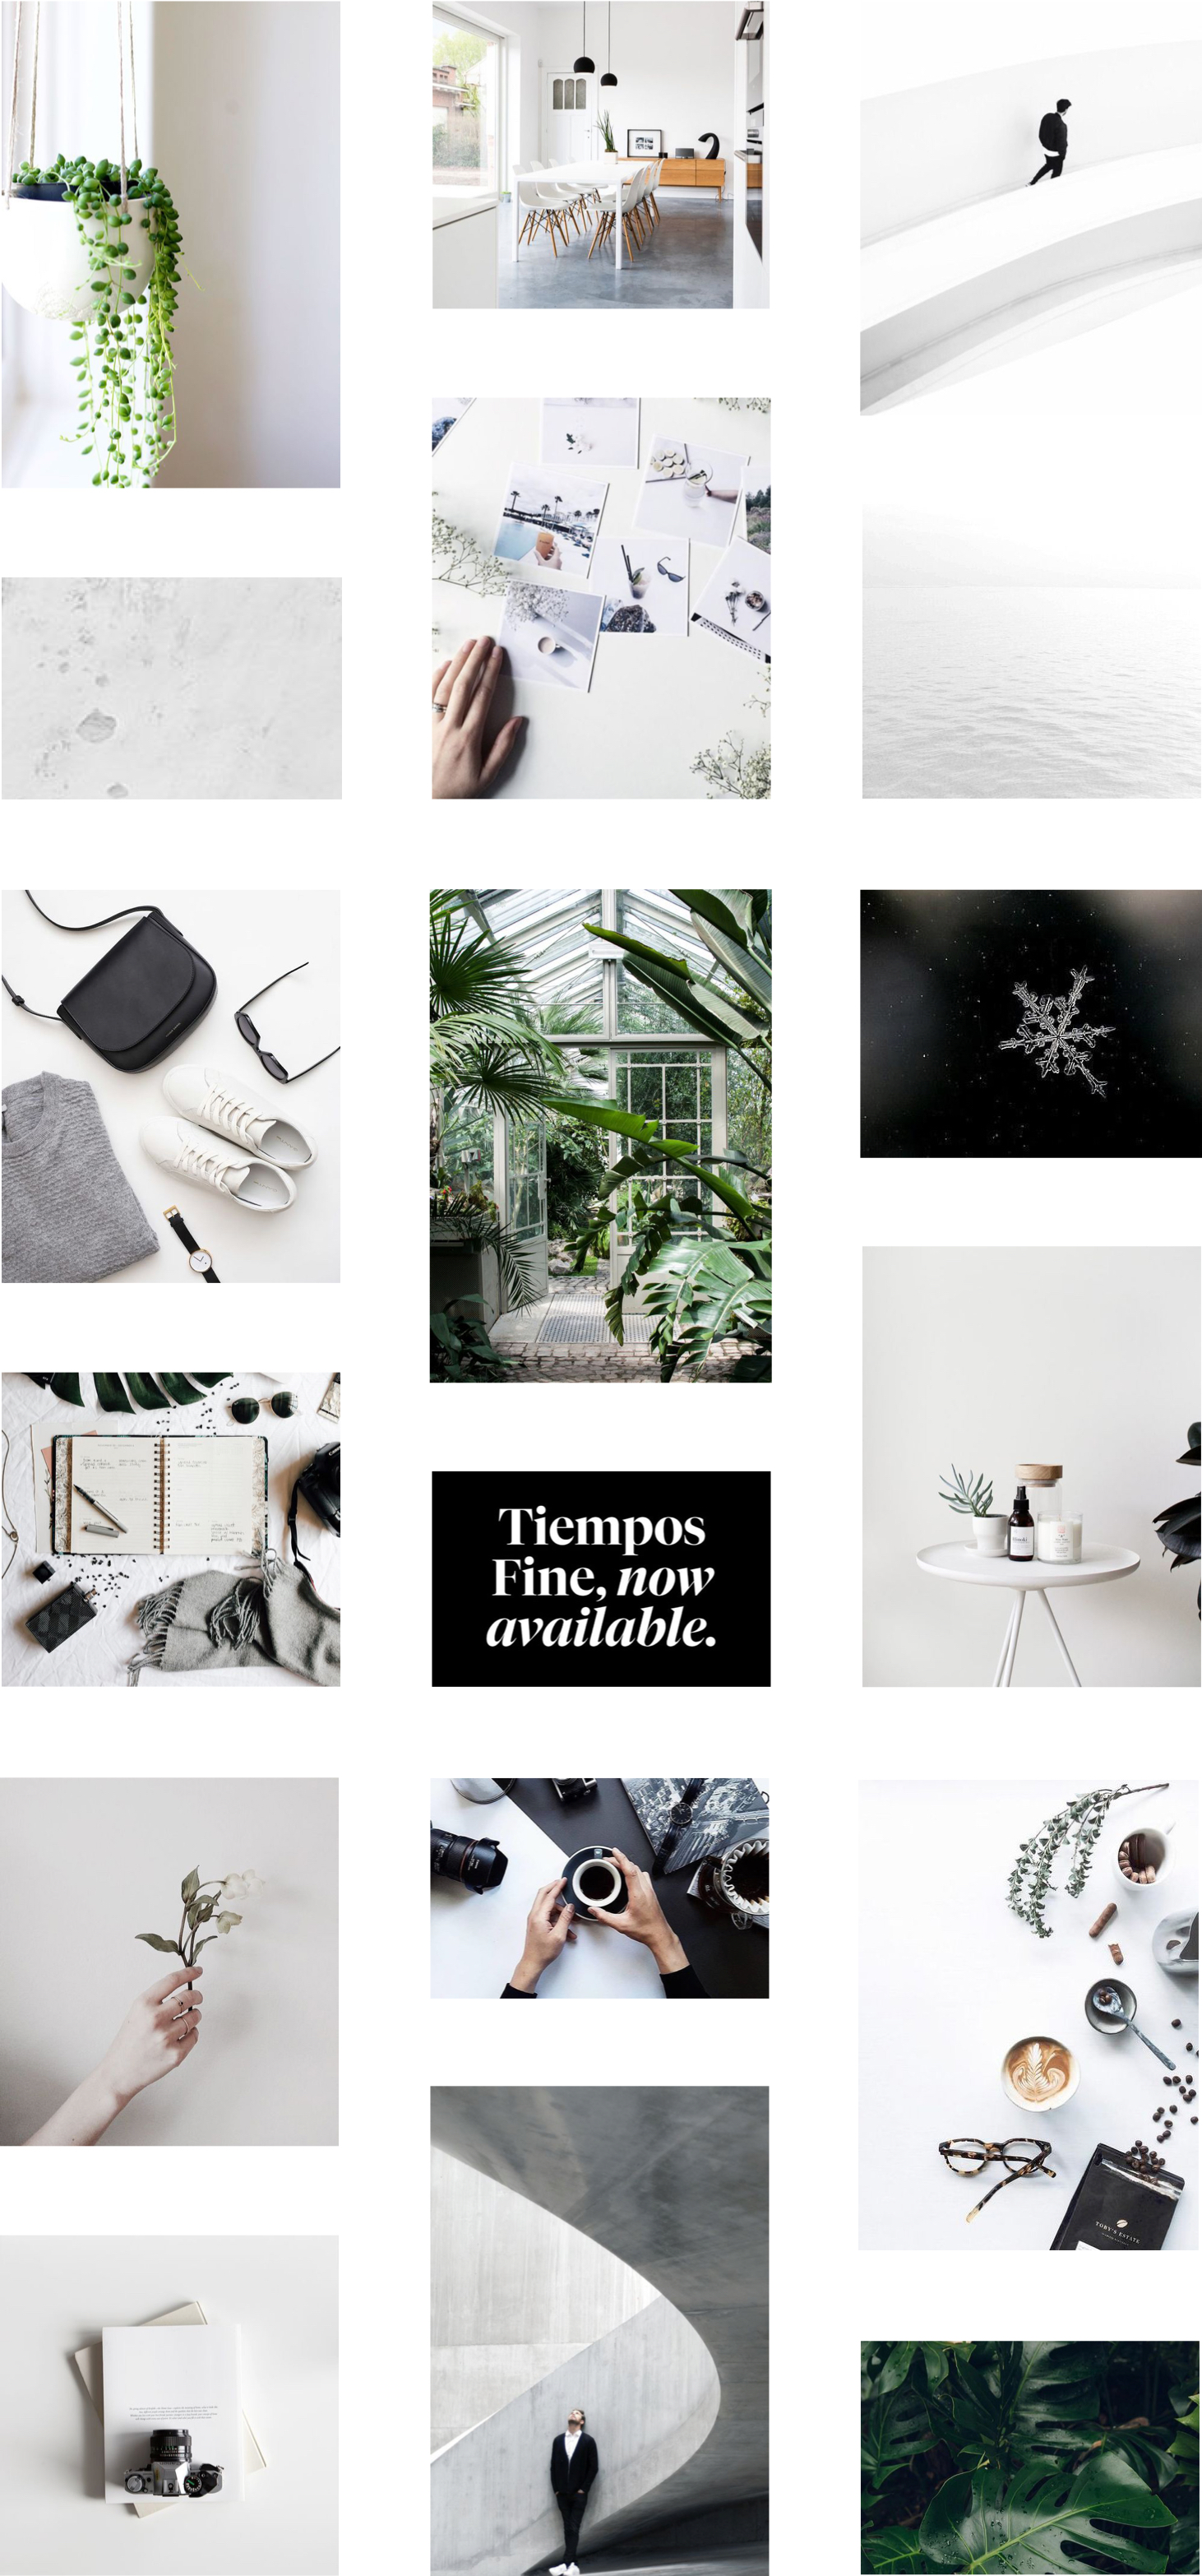 Jack Watkins branding inspiration and moodboards